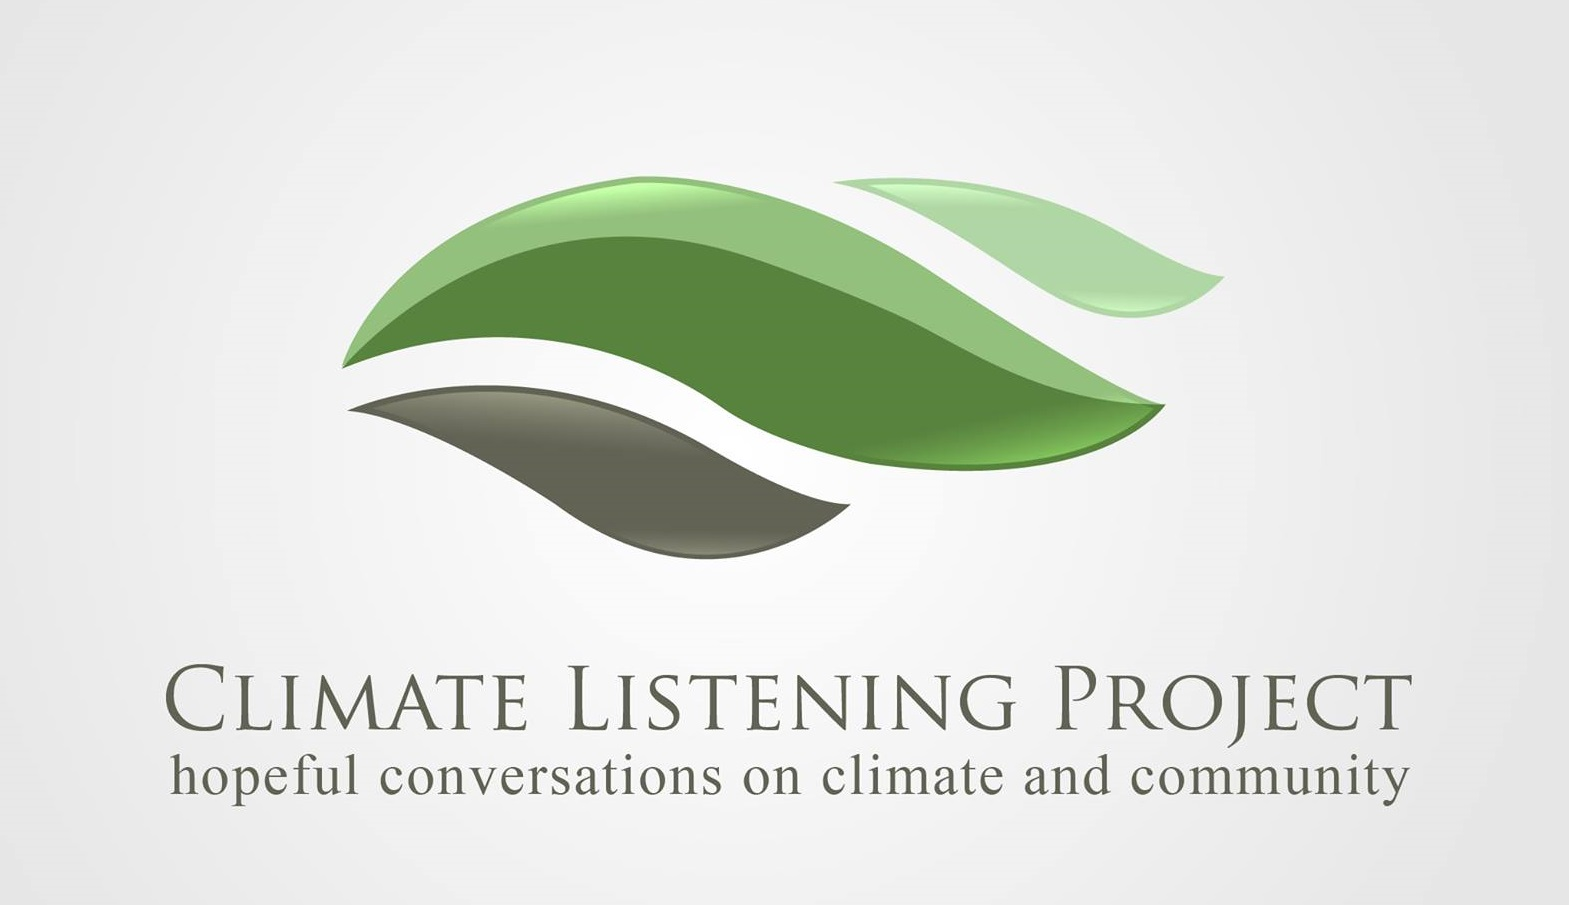 climate listening project logo new 2016